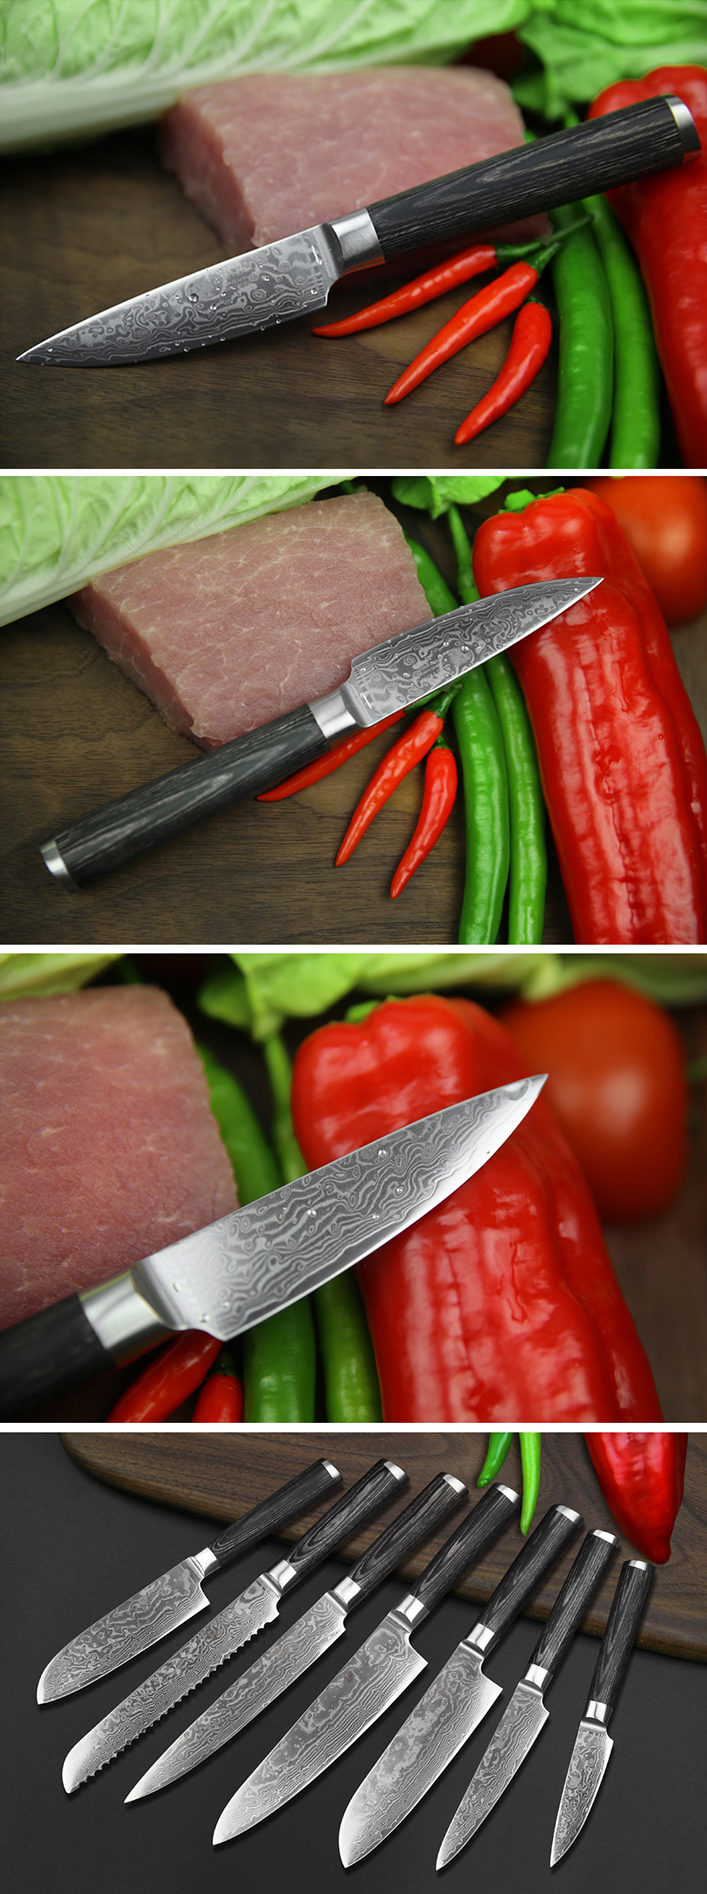 And there are a few types of knives that every kitchen needs then